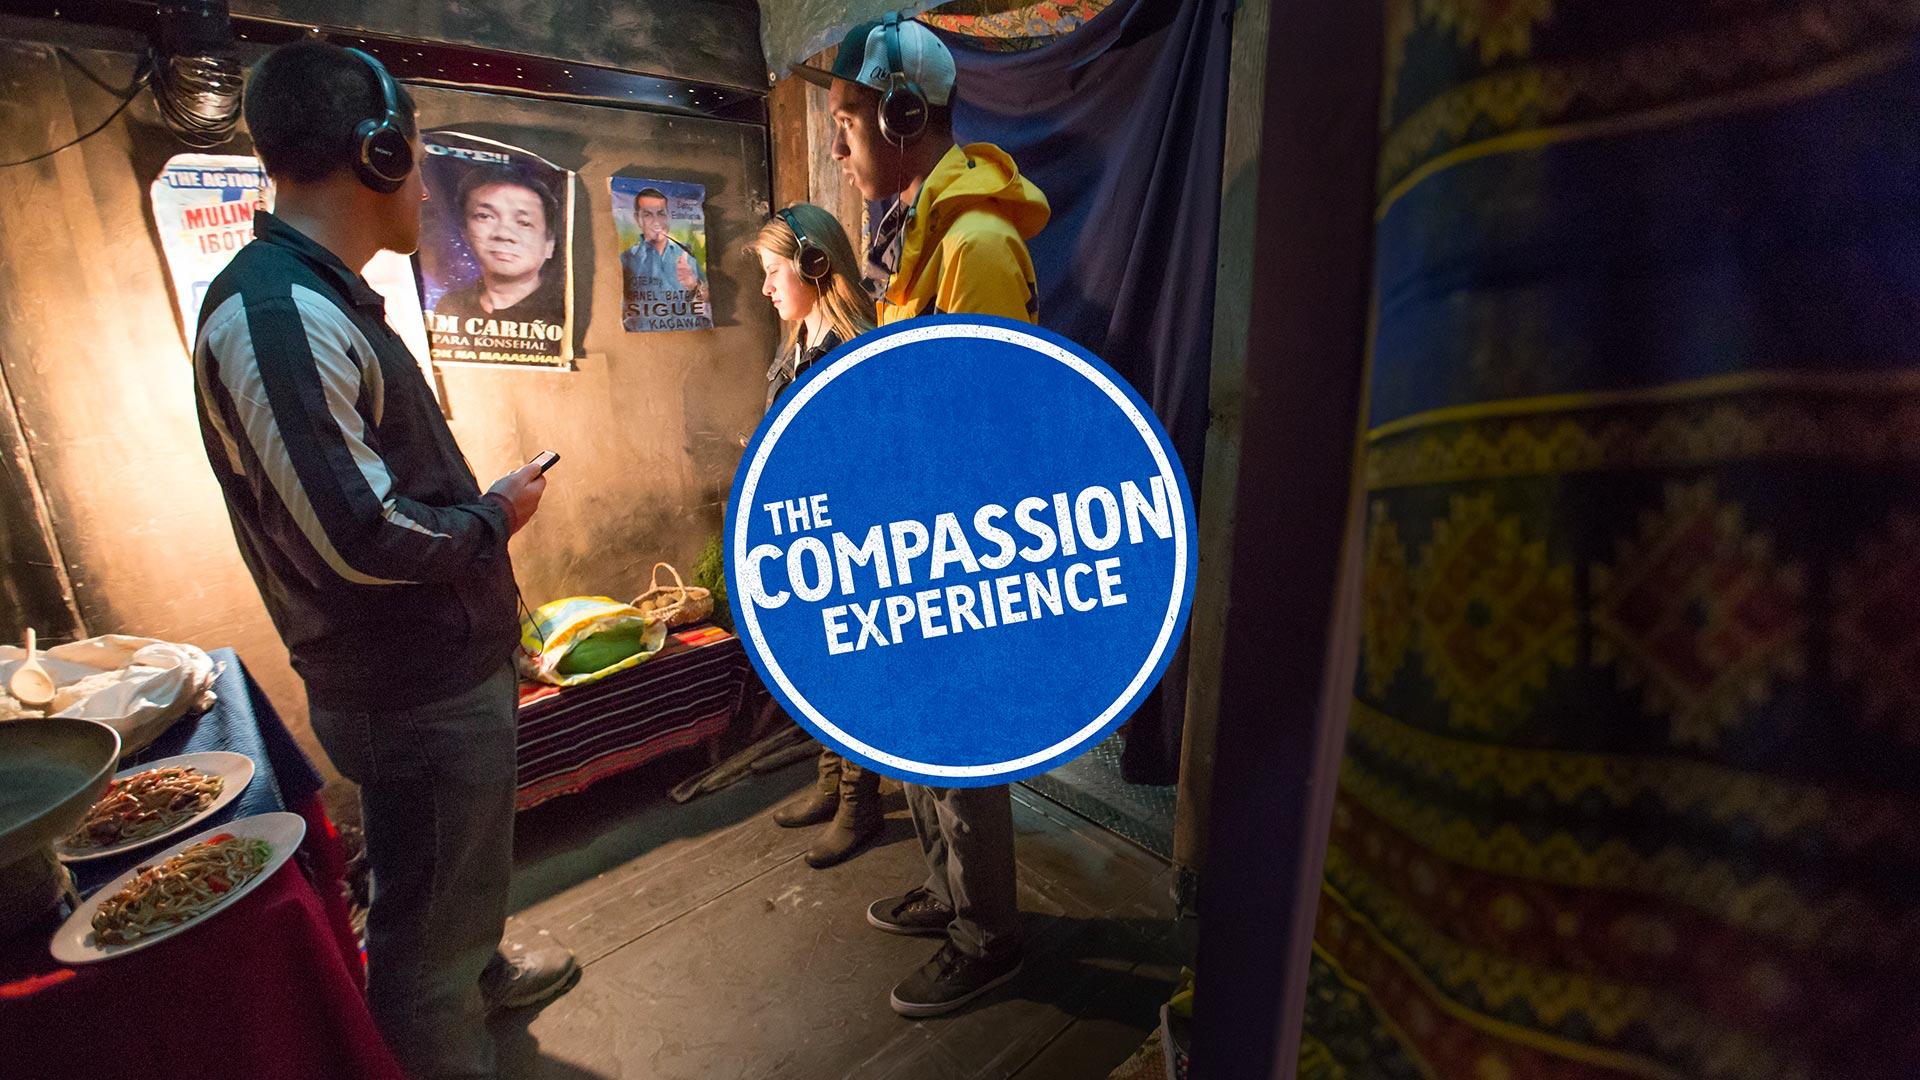 The Compassion Experience-event